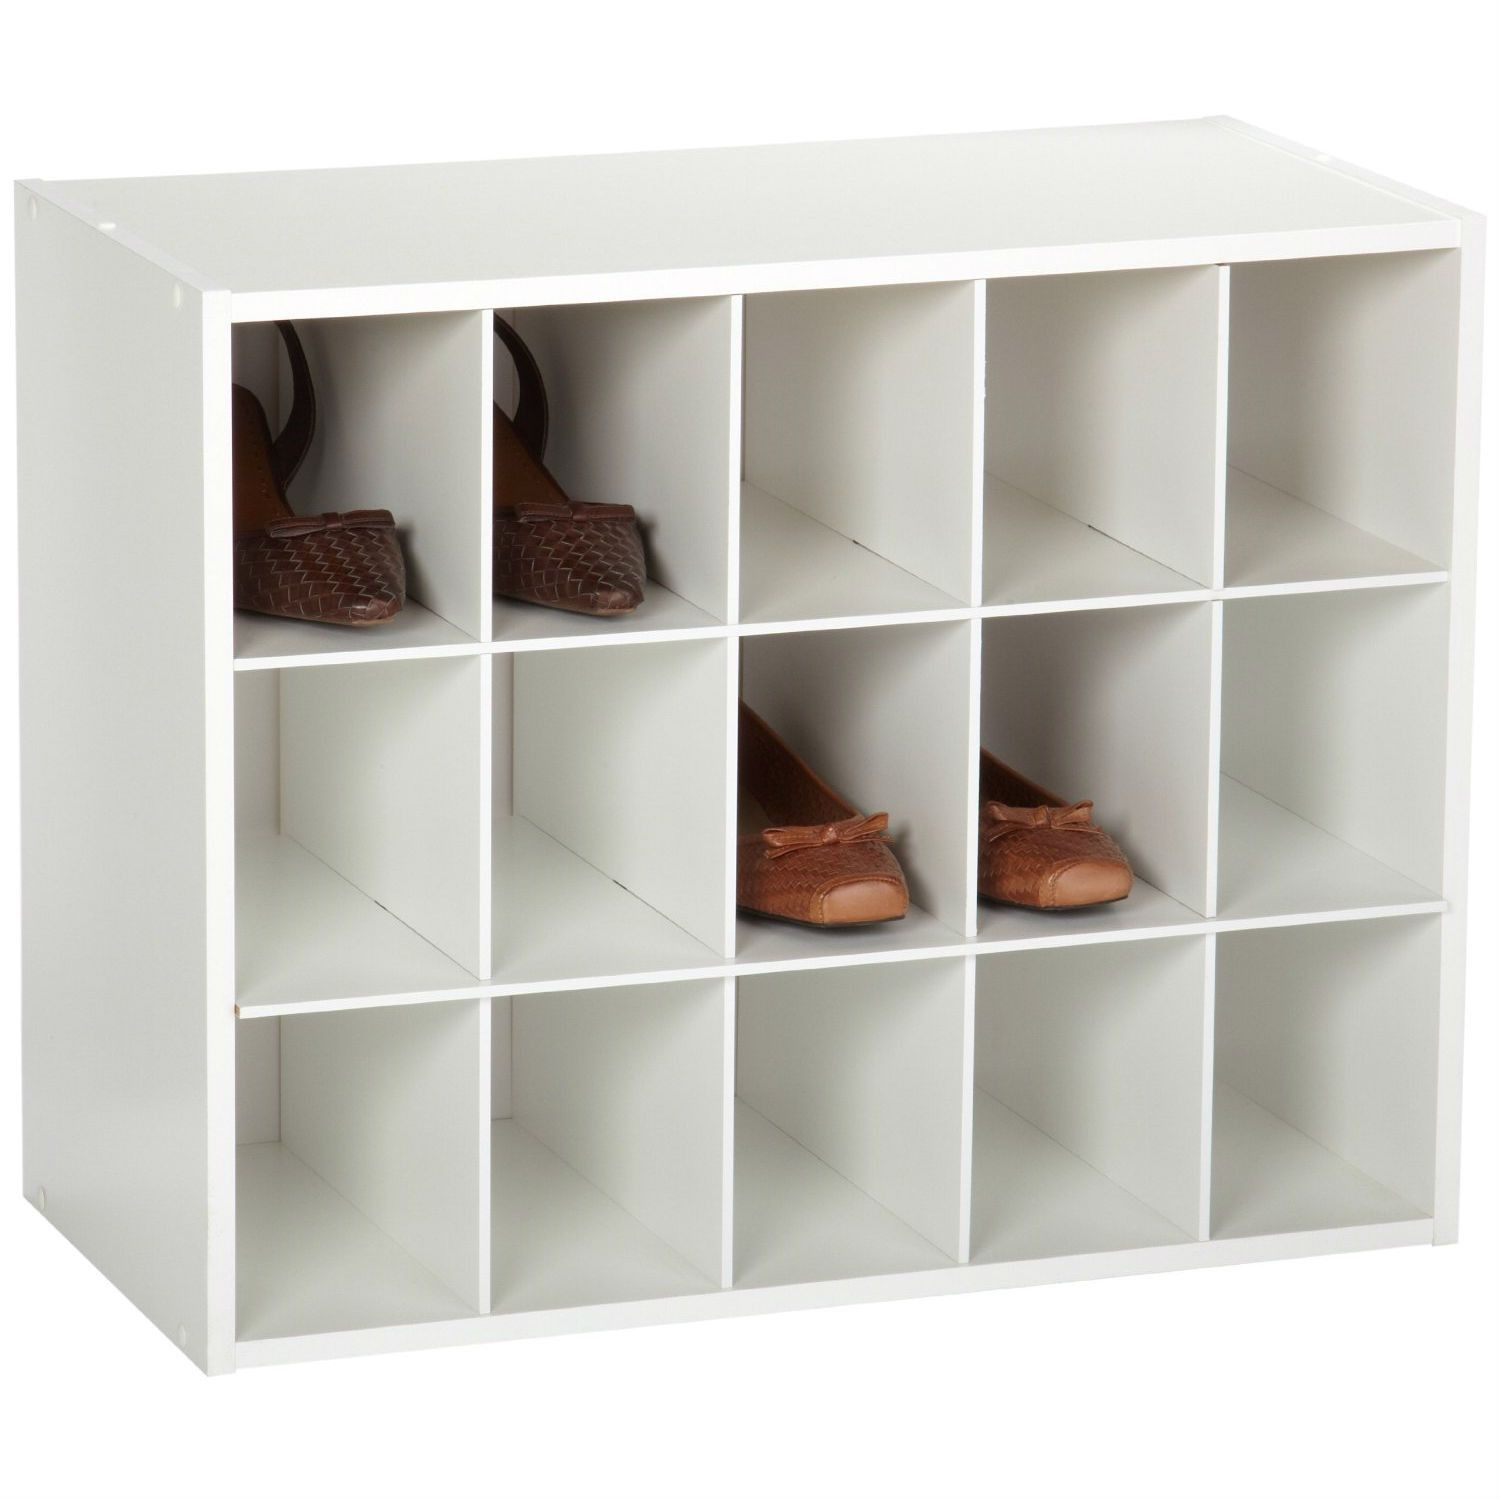 Shoe Racks And Organizers Simple 15Cubby Stackable Shoe Rack Organizer Shelves In White Wood Finish Design Decoration